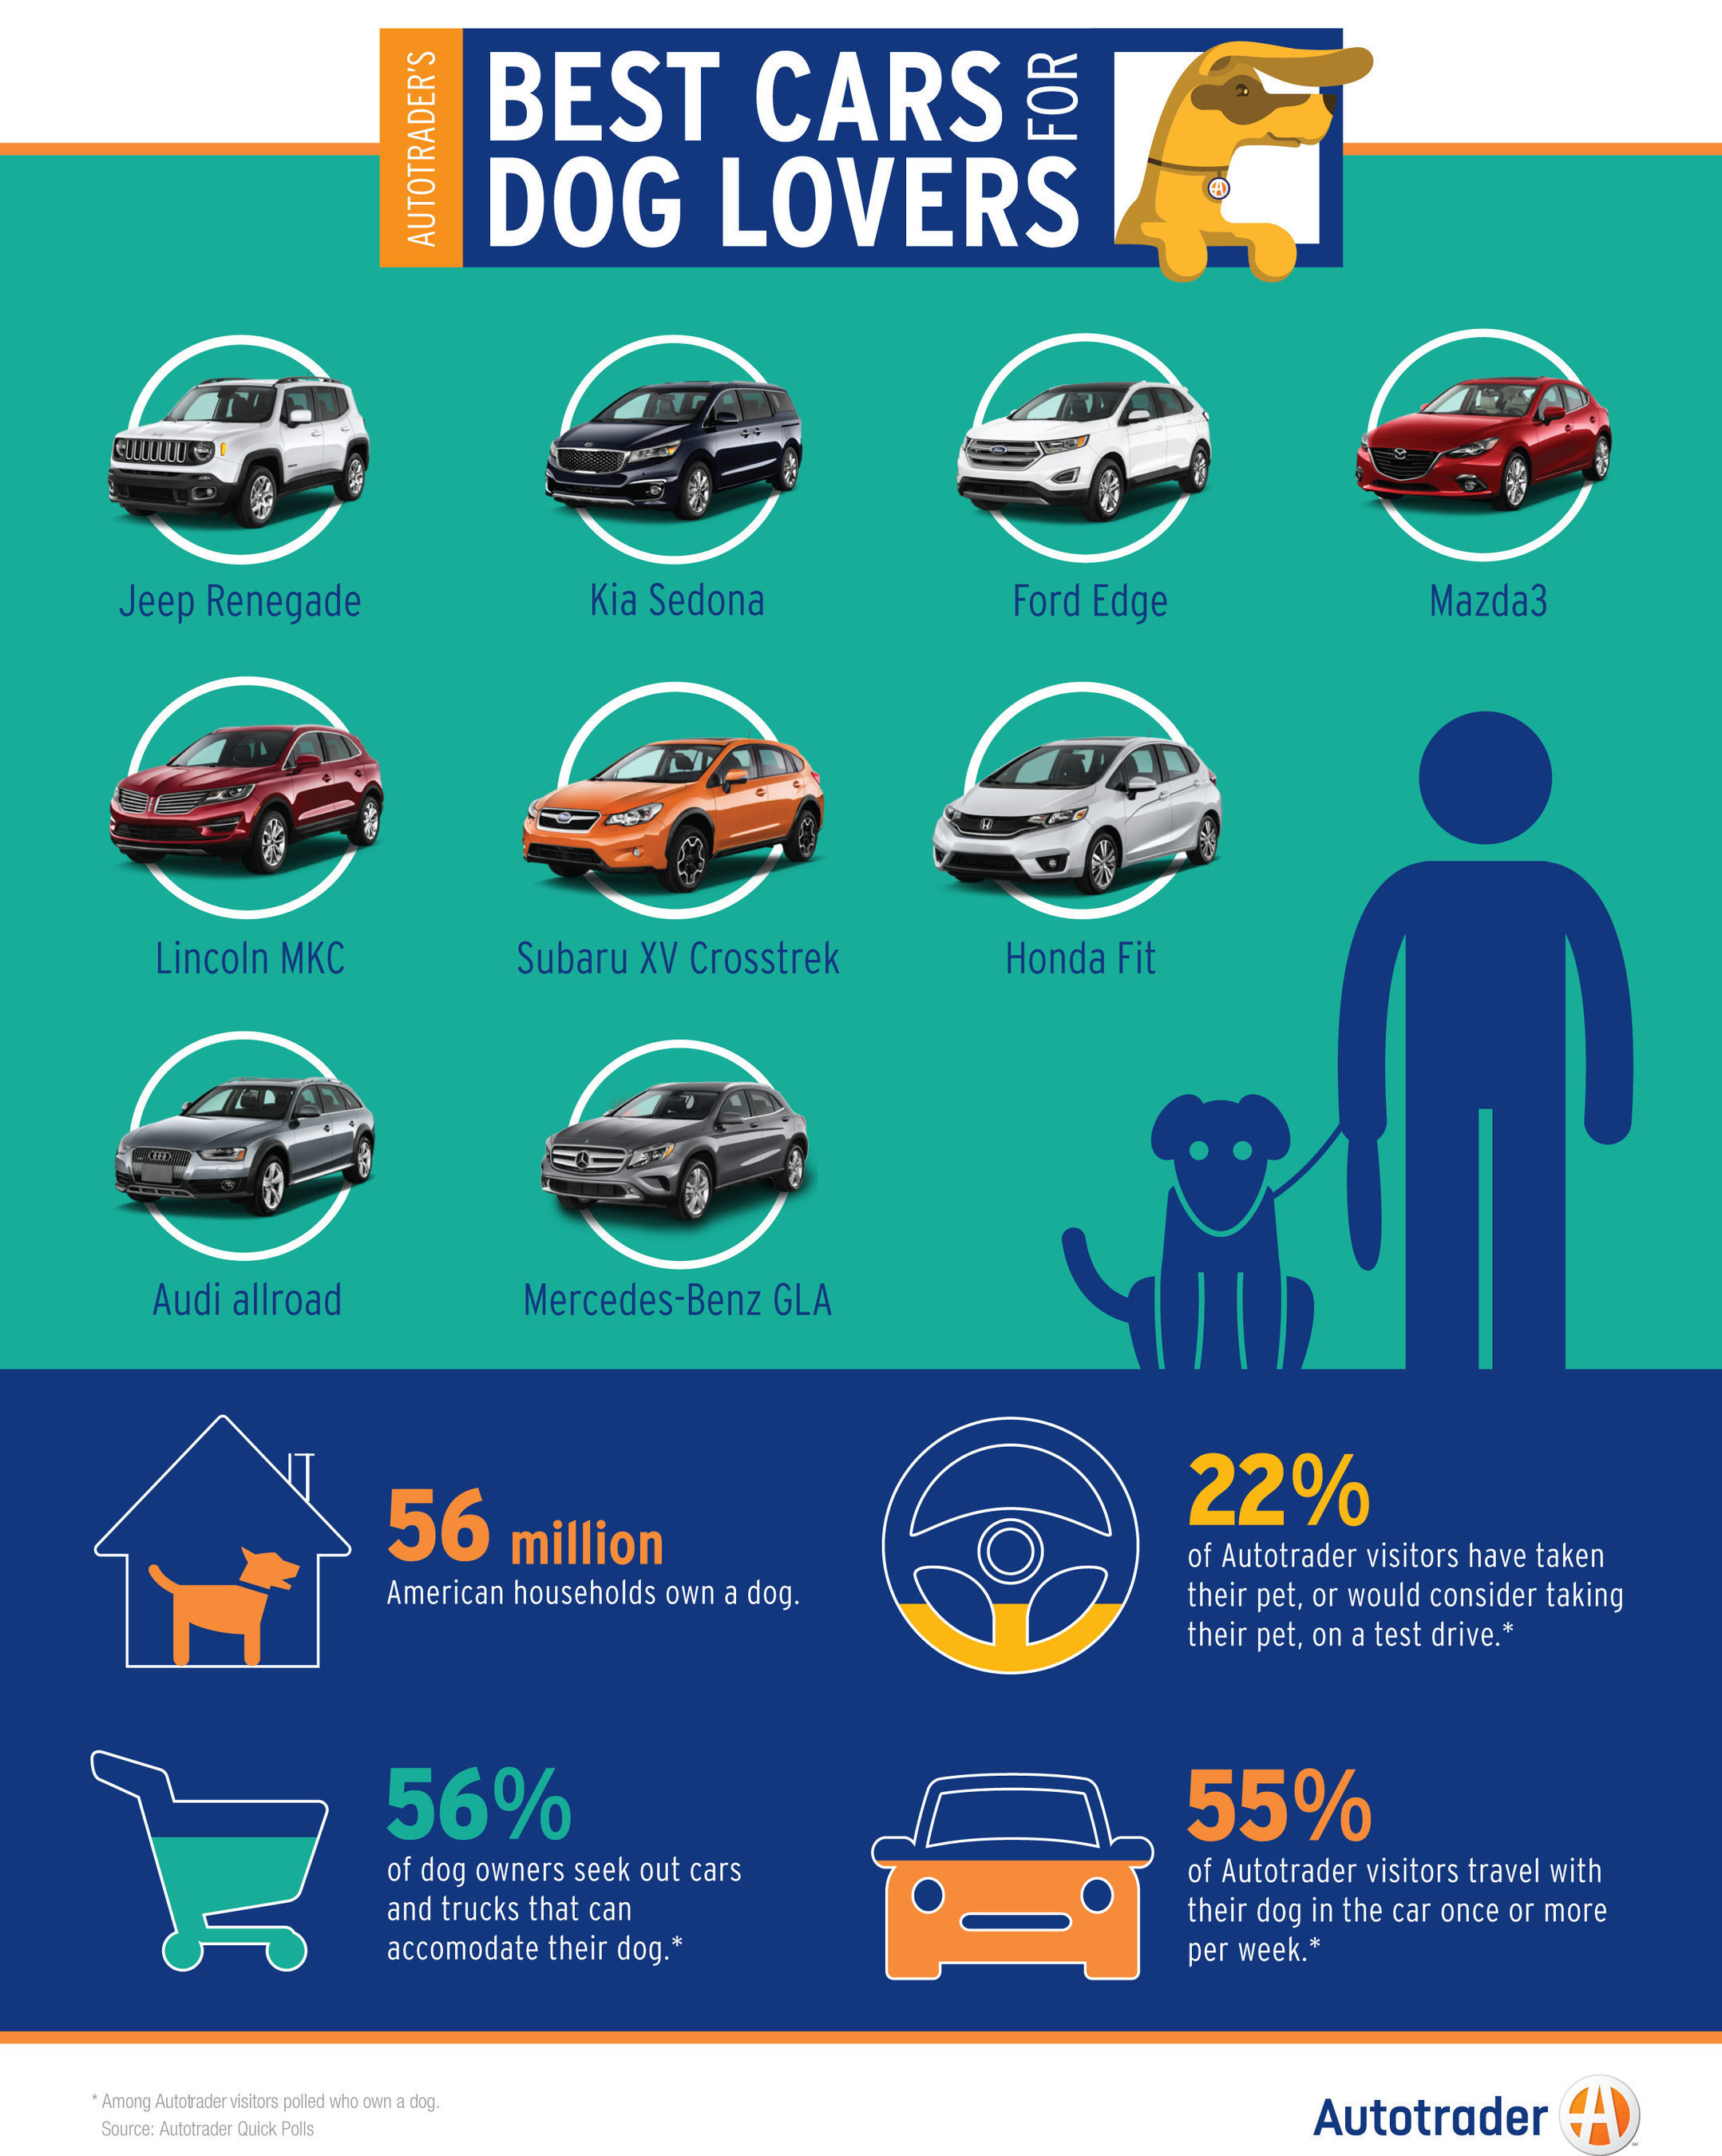 Autotrader's National Dog Day Survey Shows 1 in 4 Dog Owners Have Taken Their Pet on a Test Drive or Would ...